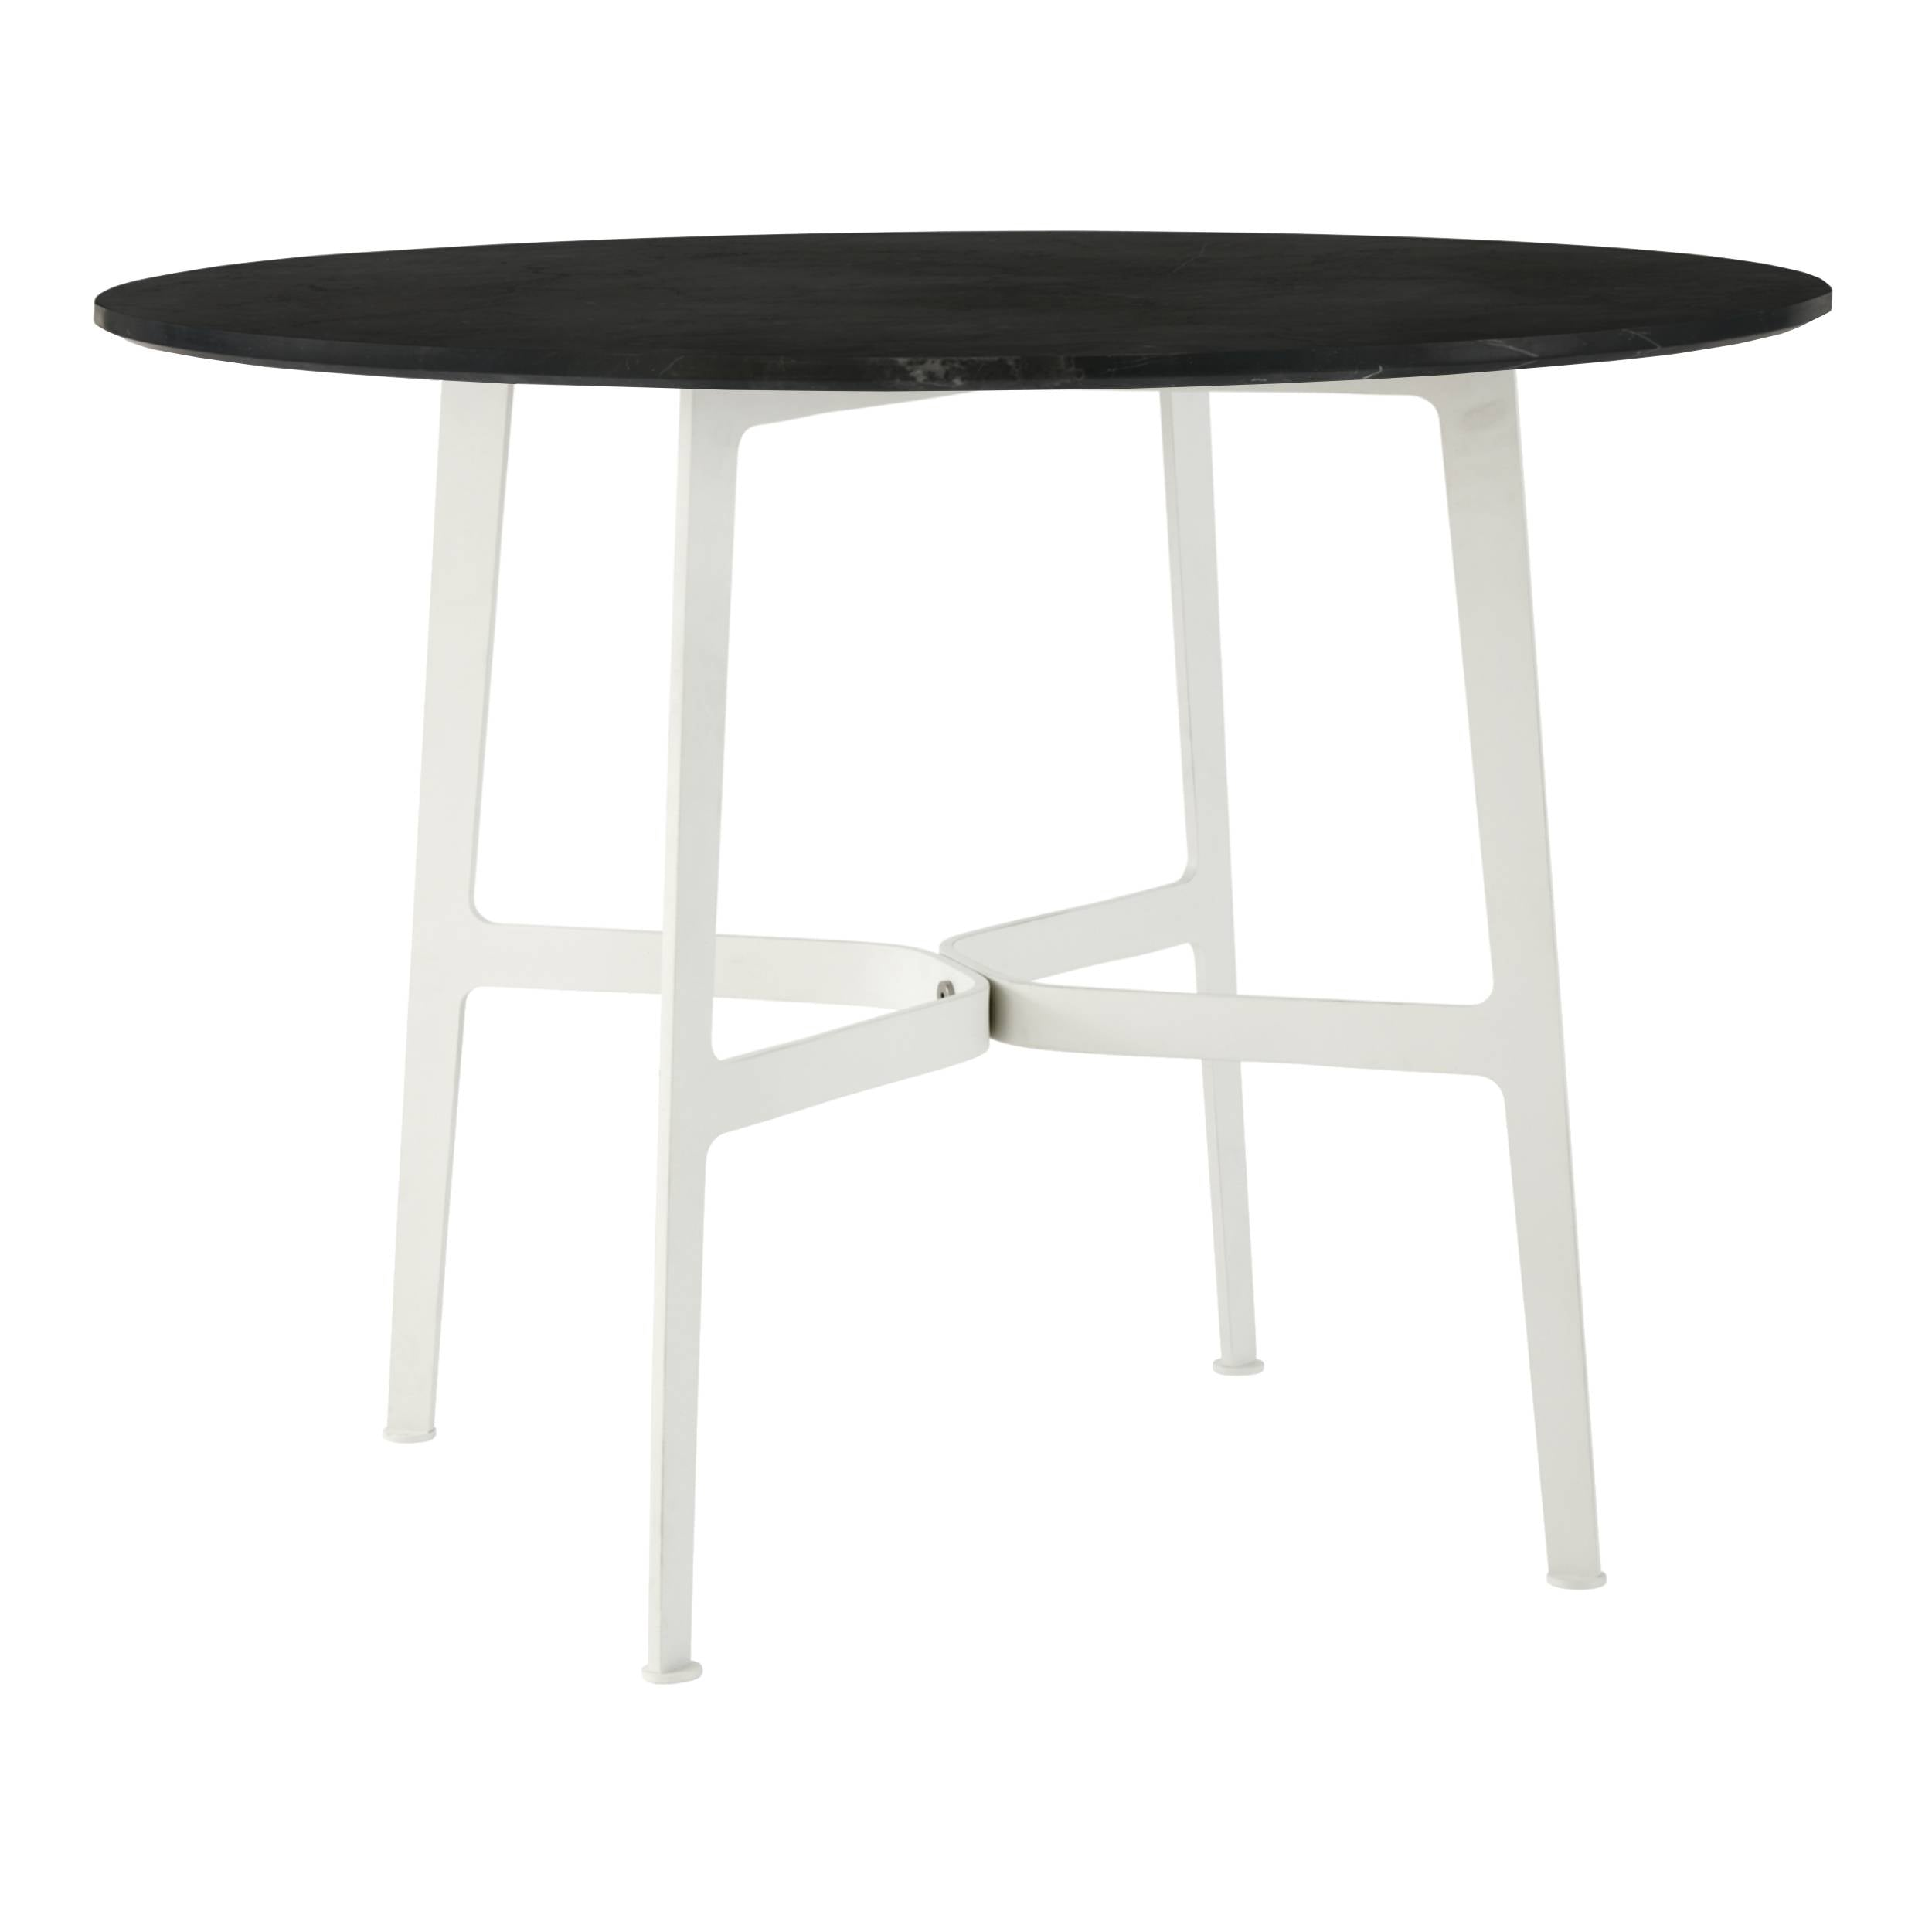 Eileen Circular Dining Table: Large + White + Black Marble